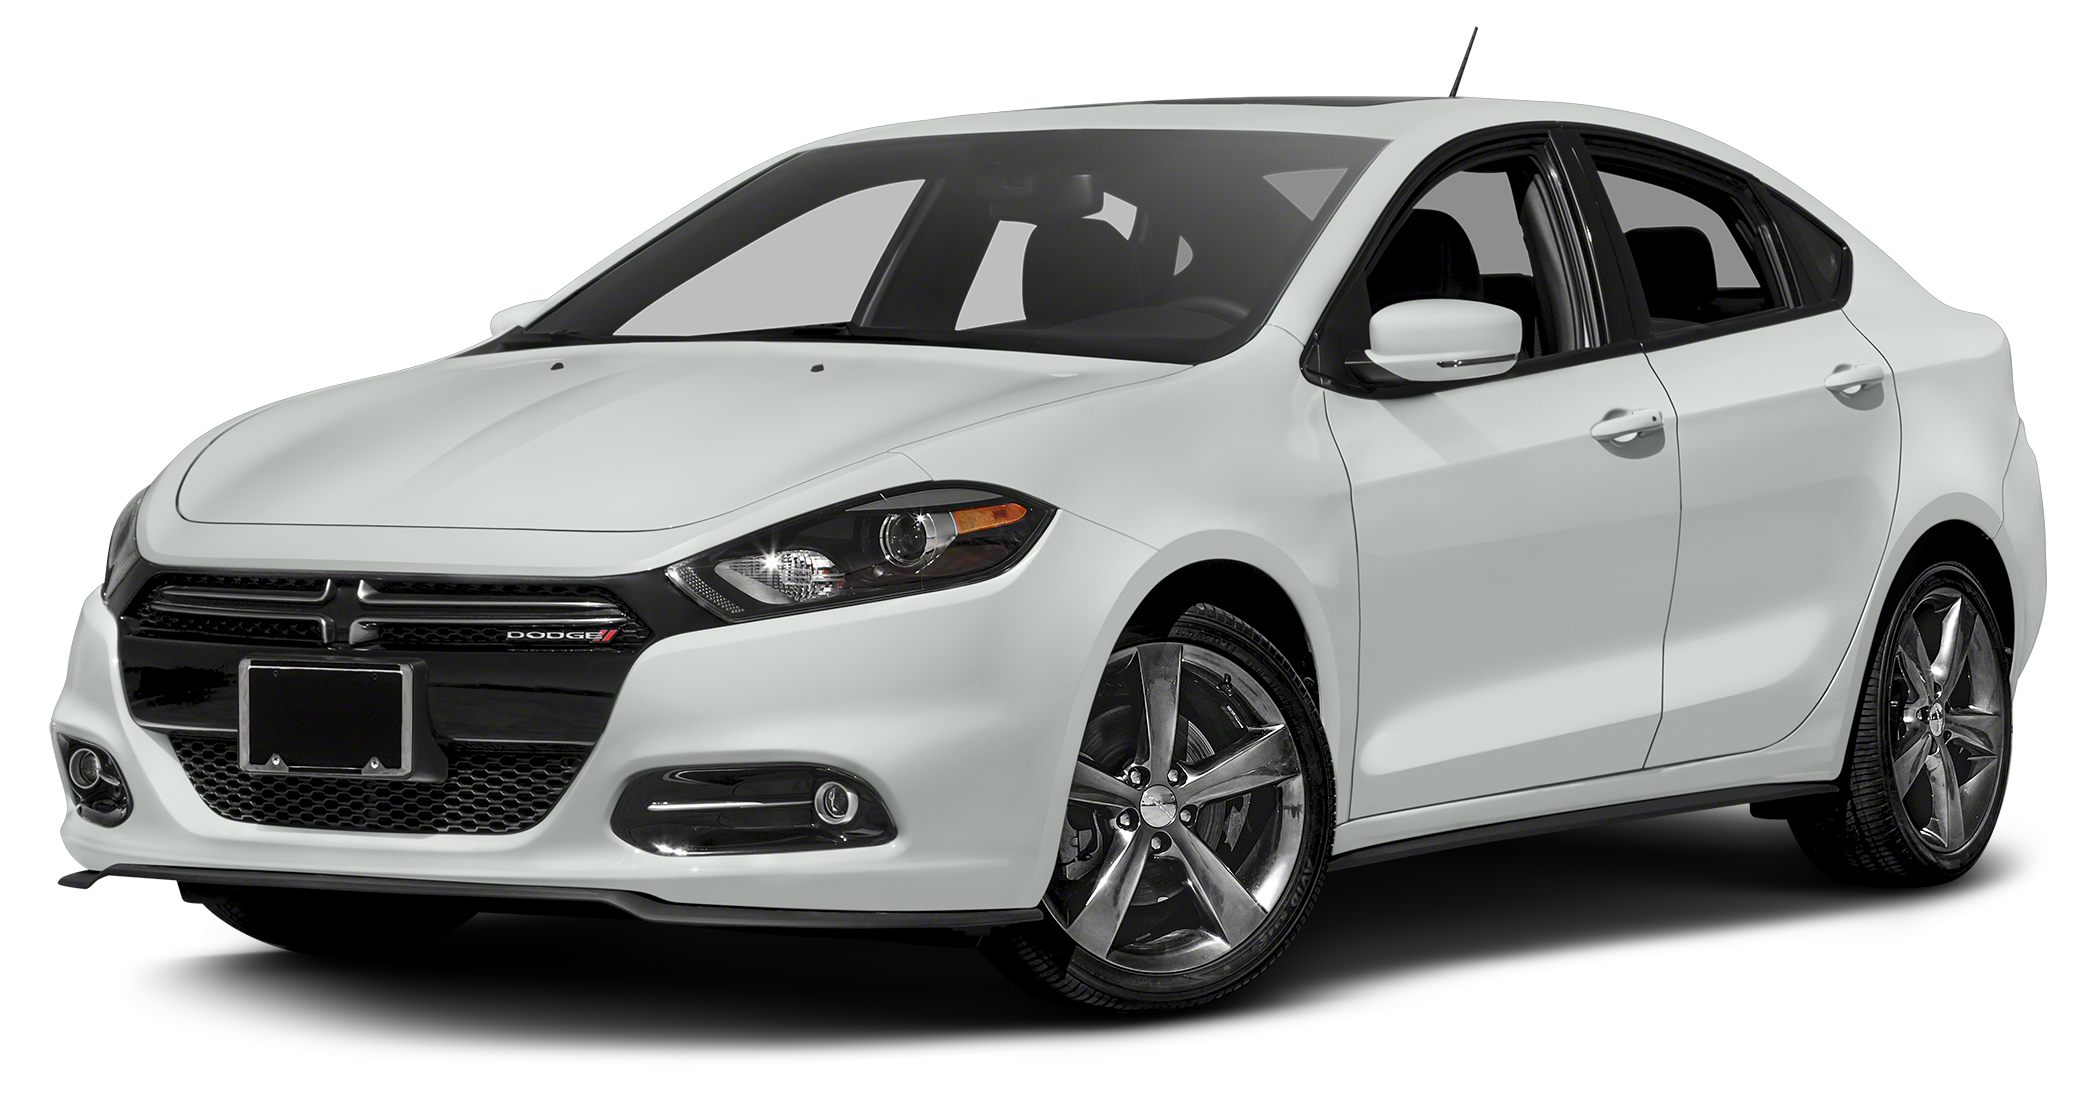 2015 Dodge Dart GT GREAT MILES 18766 EPA 33 MPG Hwy23 MPG City GT trim Heated Leather Seats